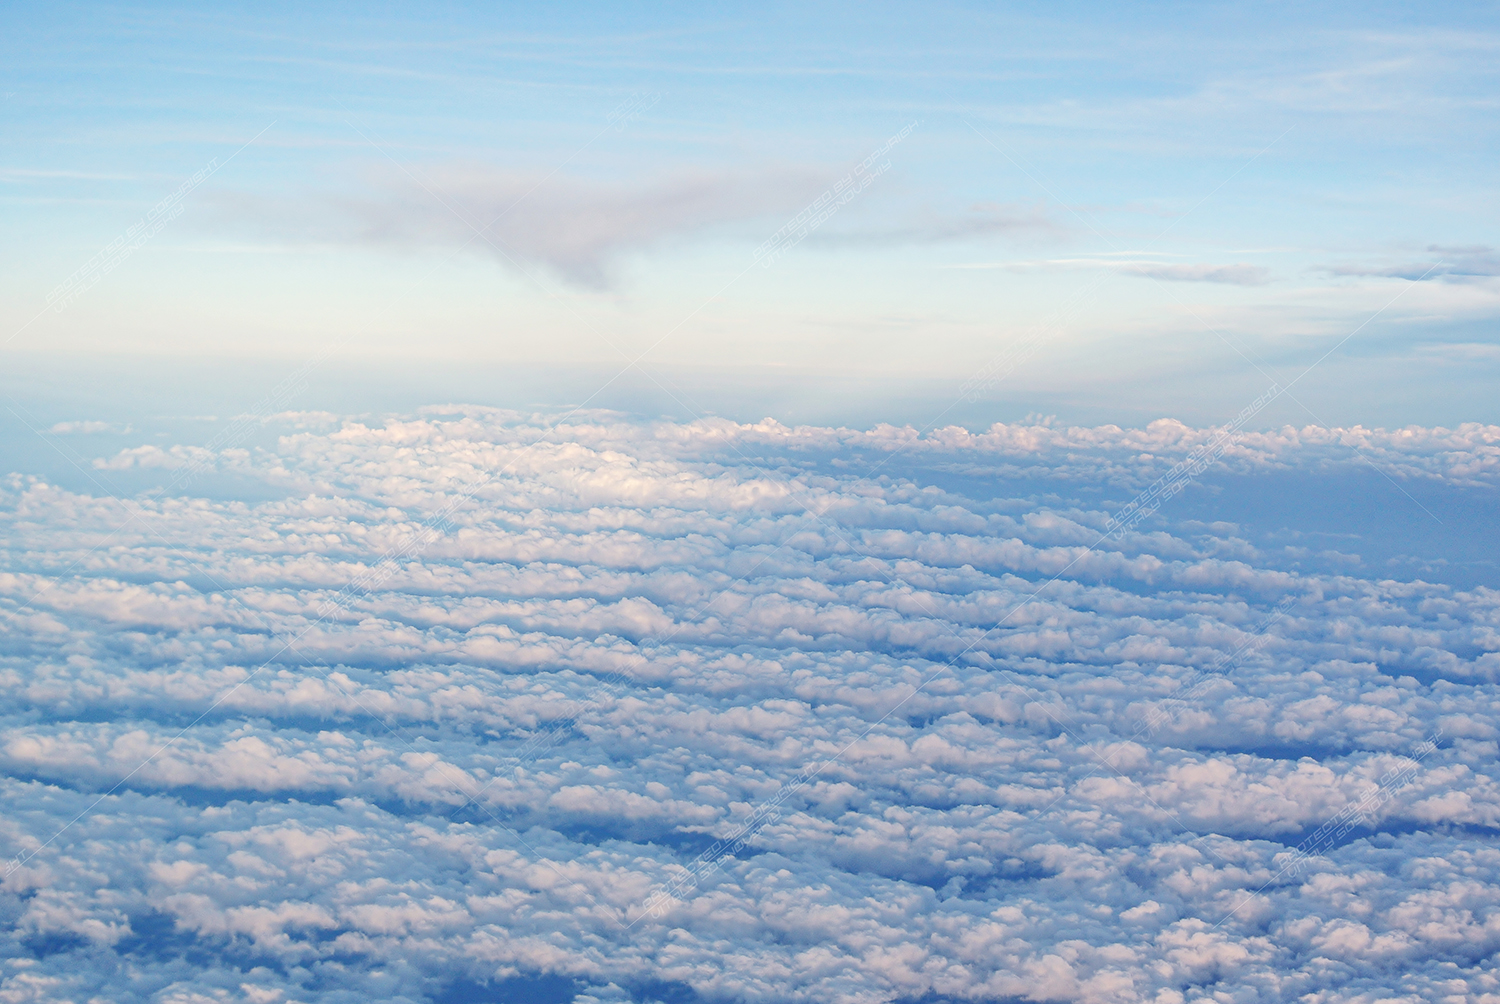 20 Photos clouds and wings of airplanes example image 3